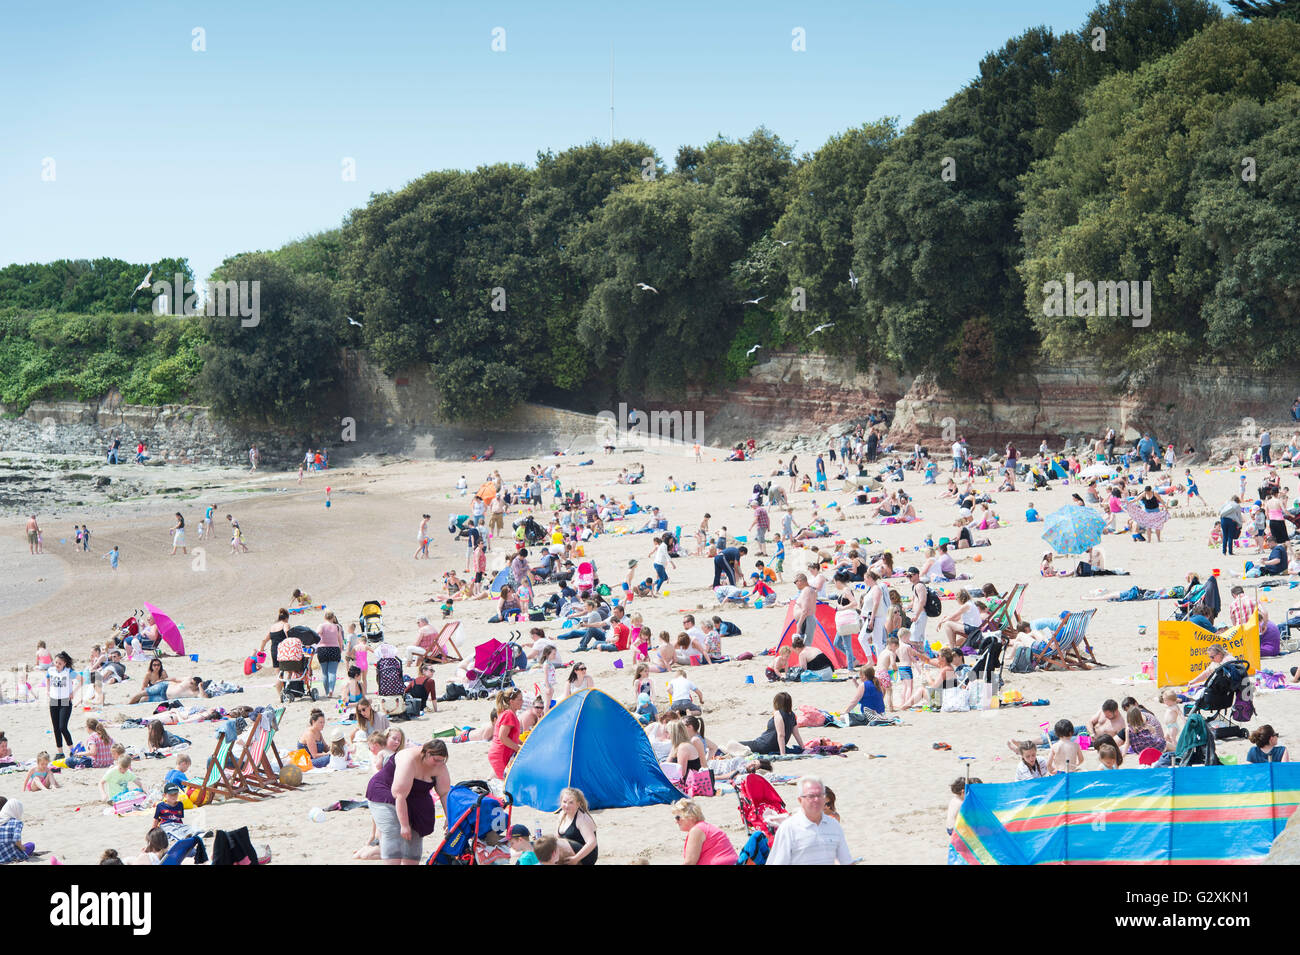 A busy Whitmore Bay beach at Barry Island, Barry, South Wales on a warm summers day. - Stock Image